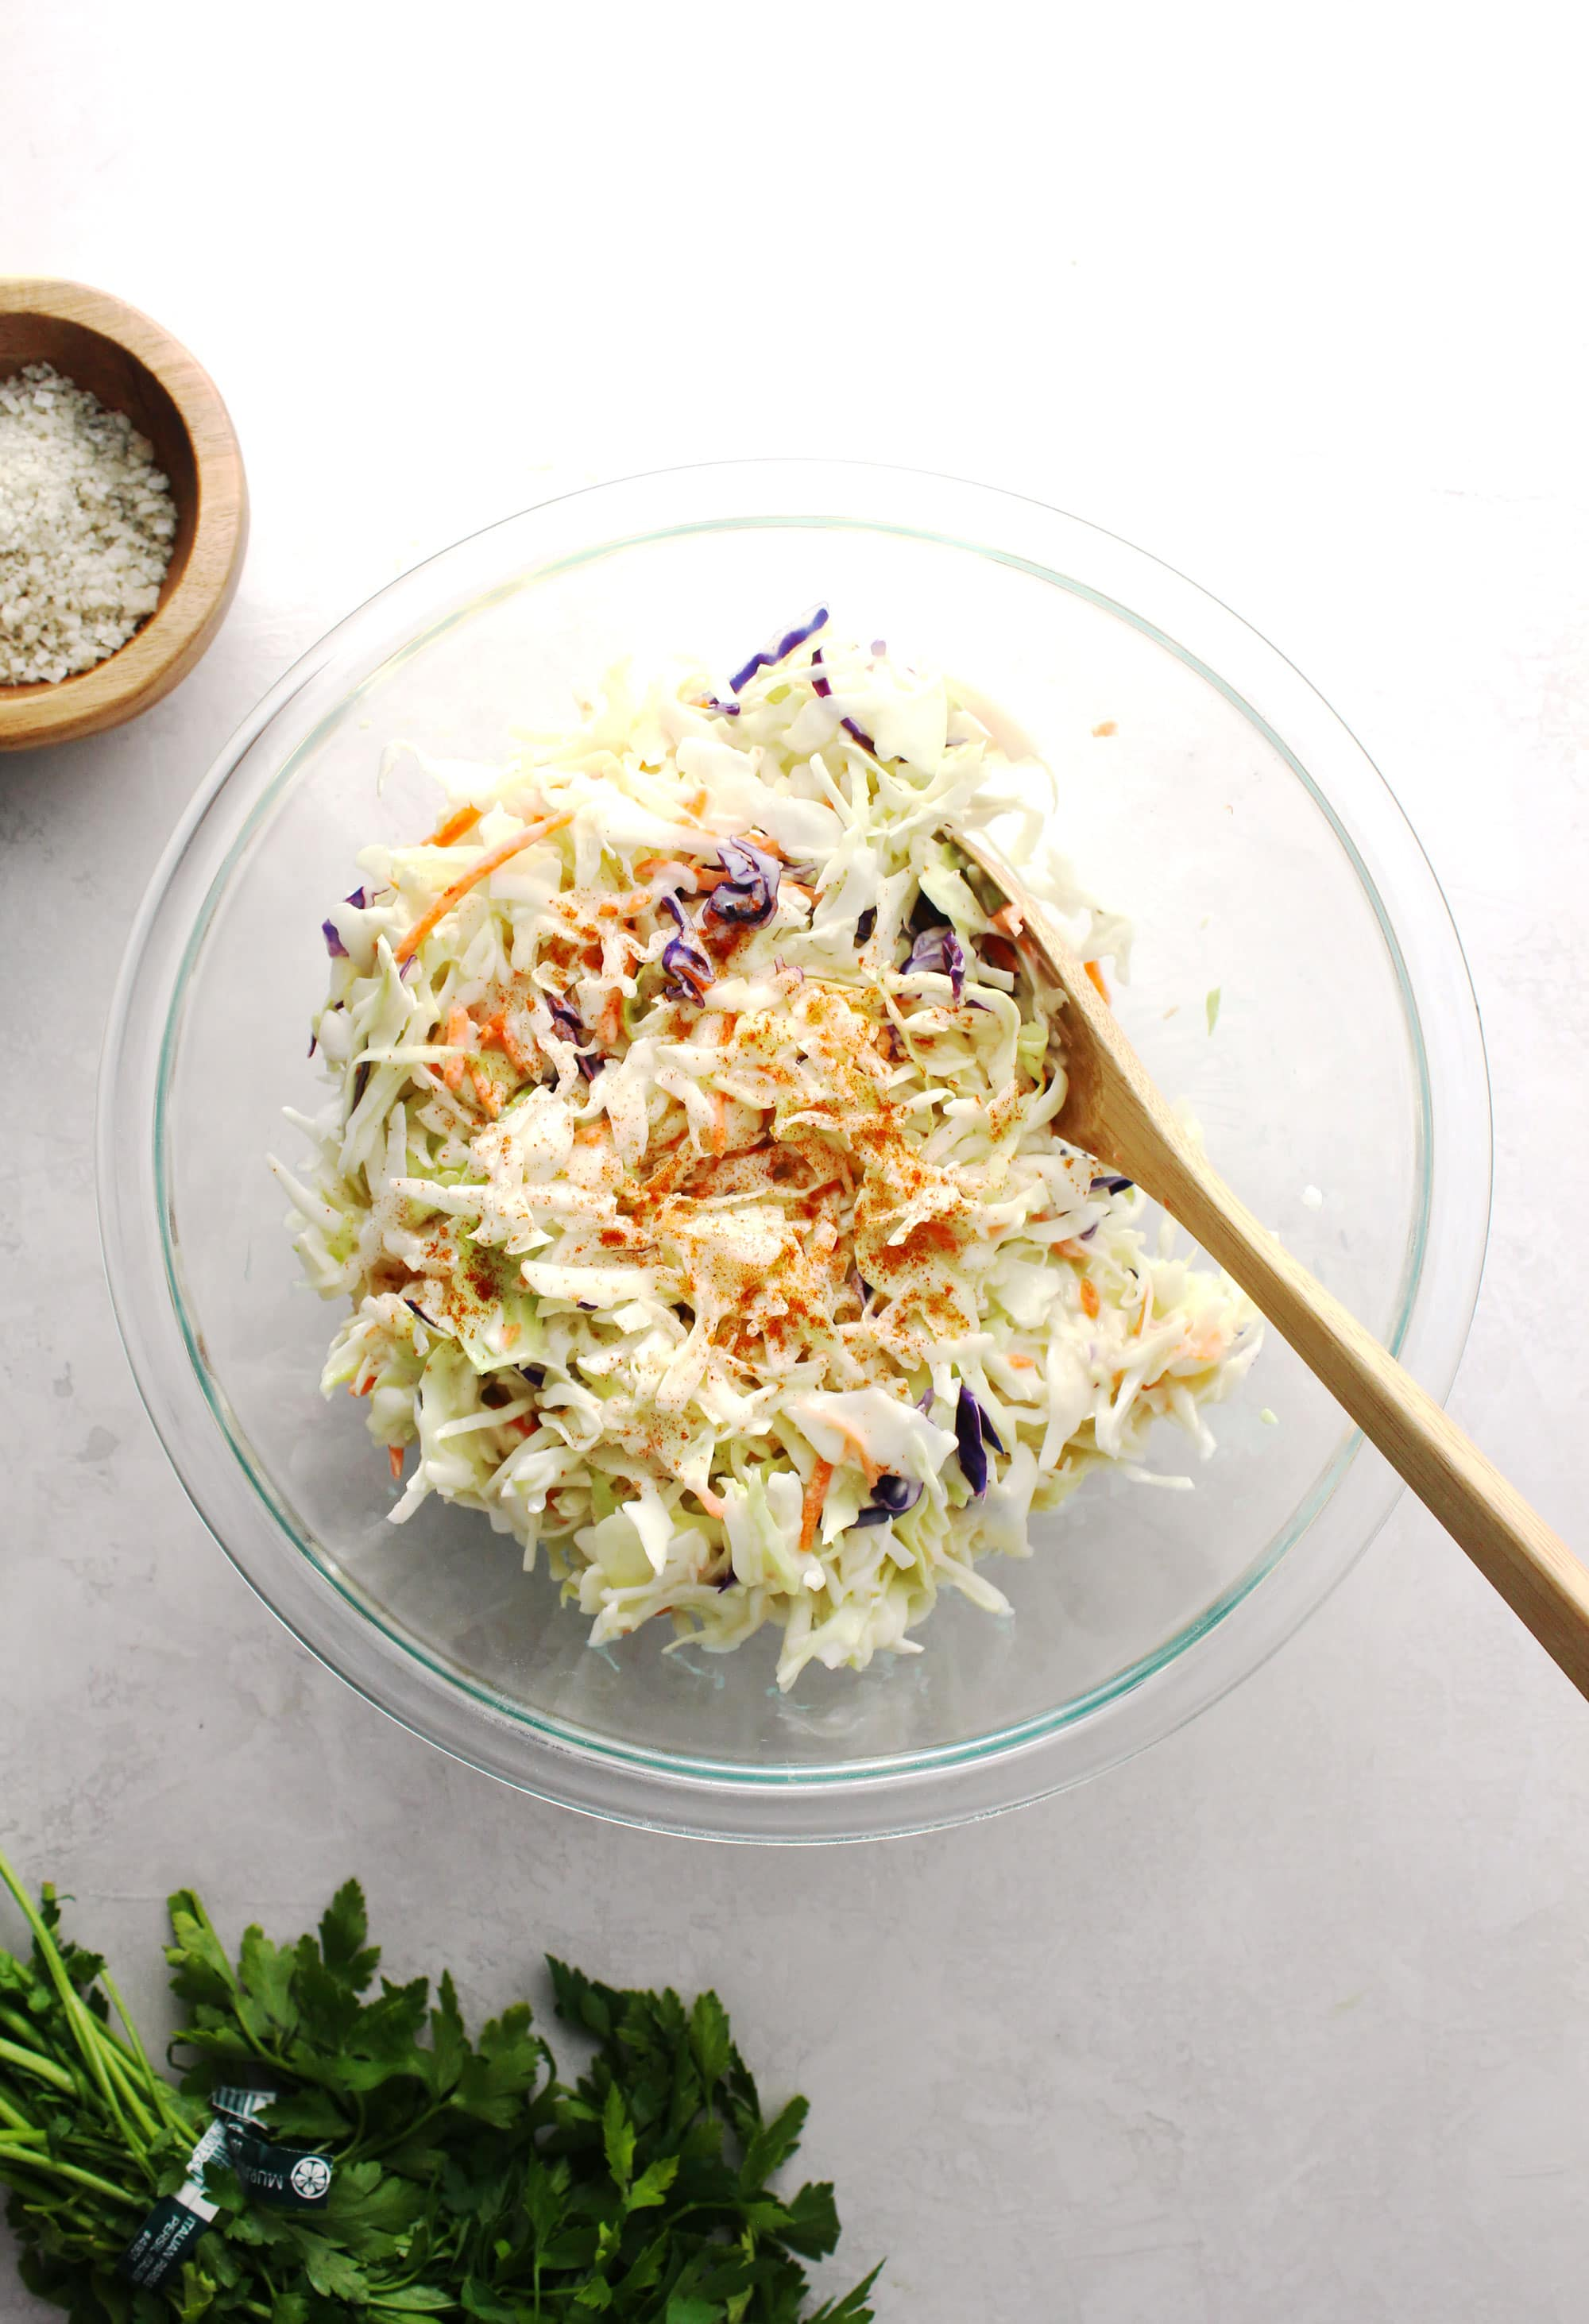 coleslaw in glass bowl with wooden spoon